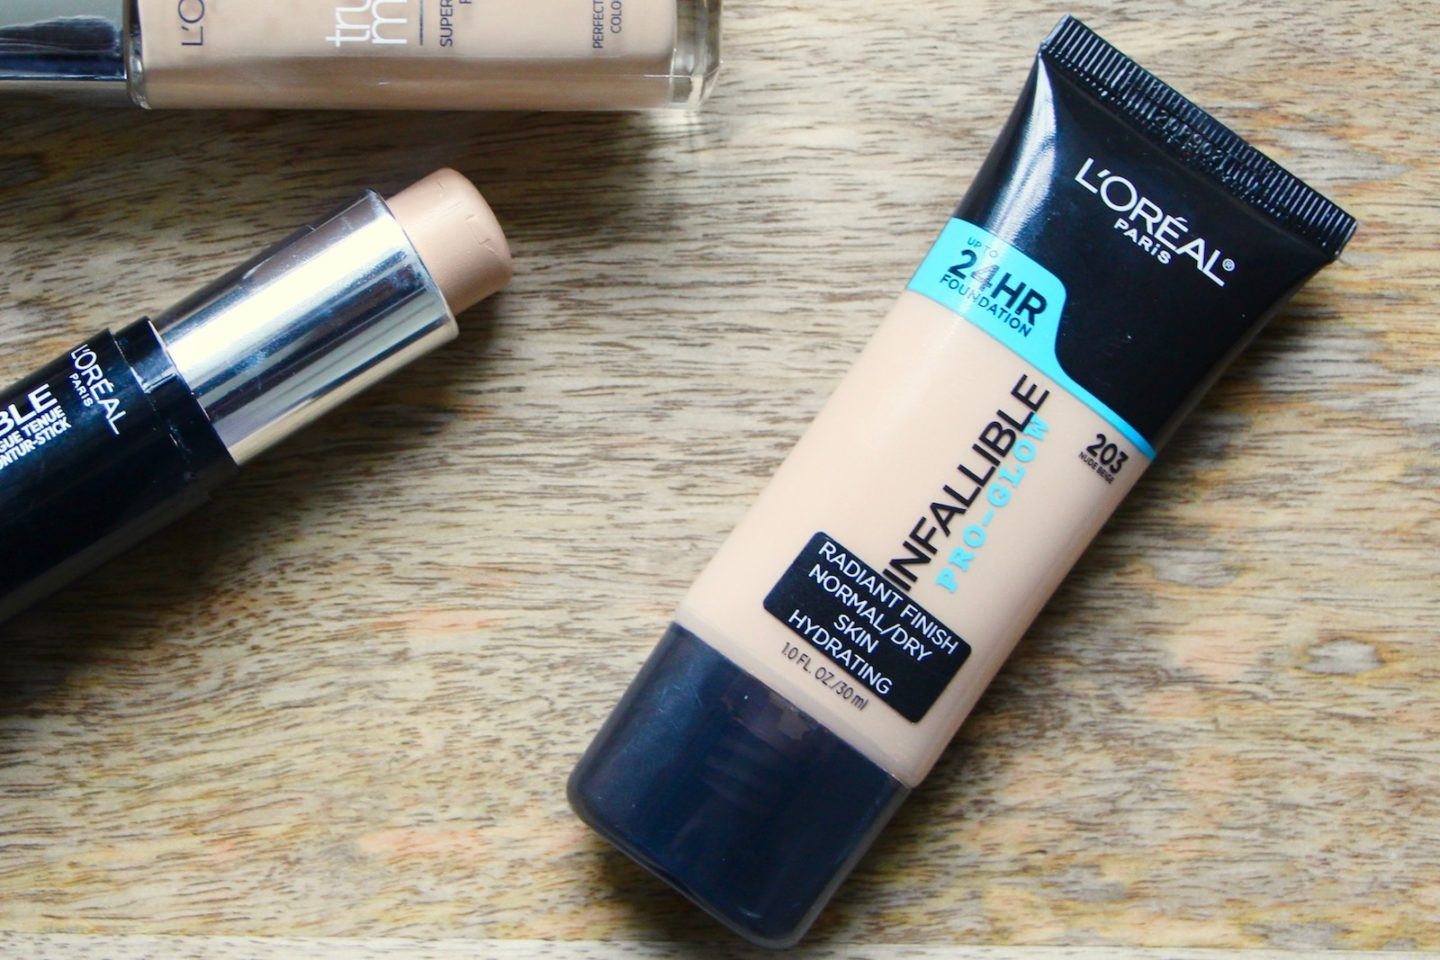 l'oreal pro glow foundation review